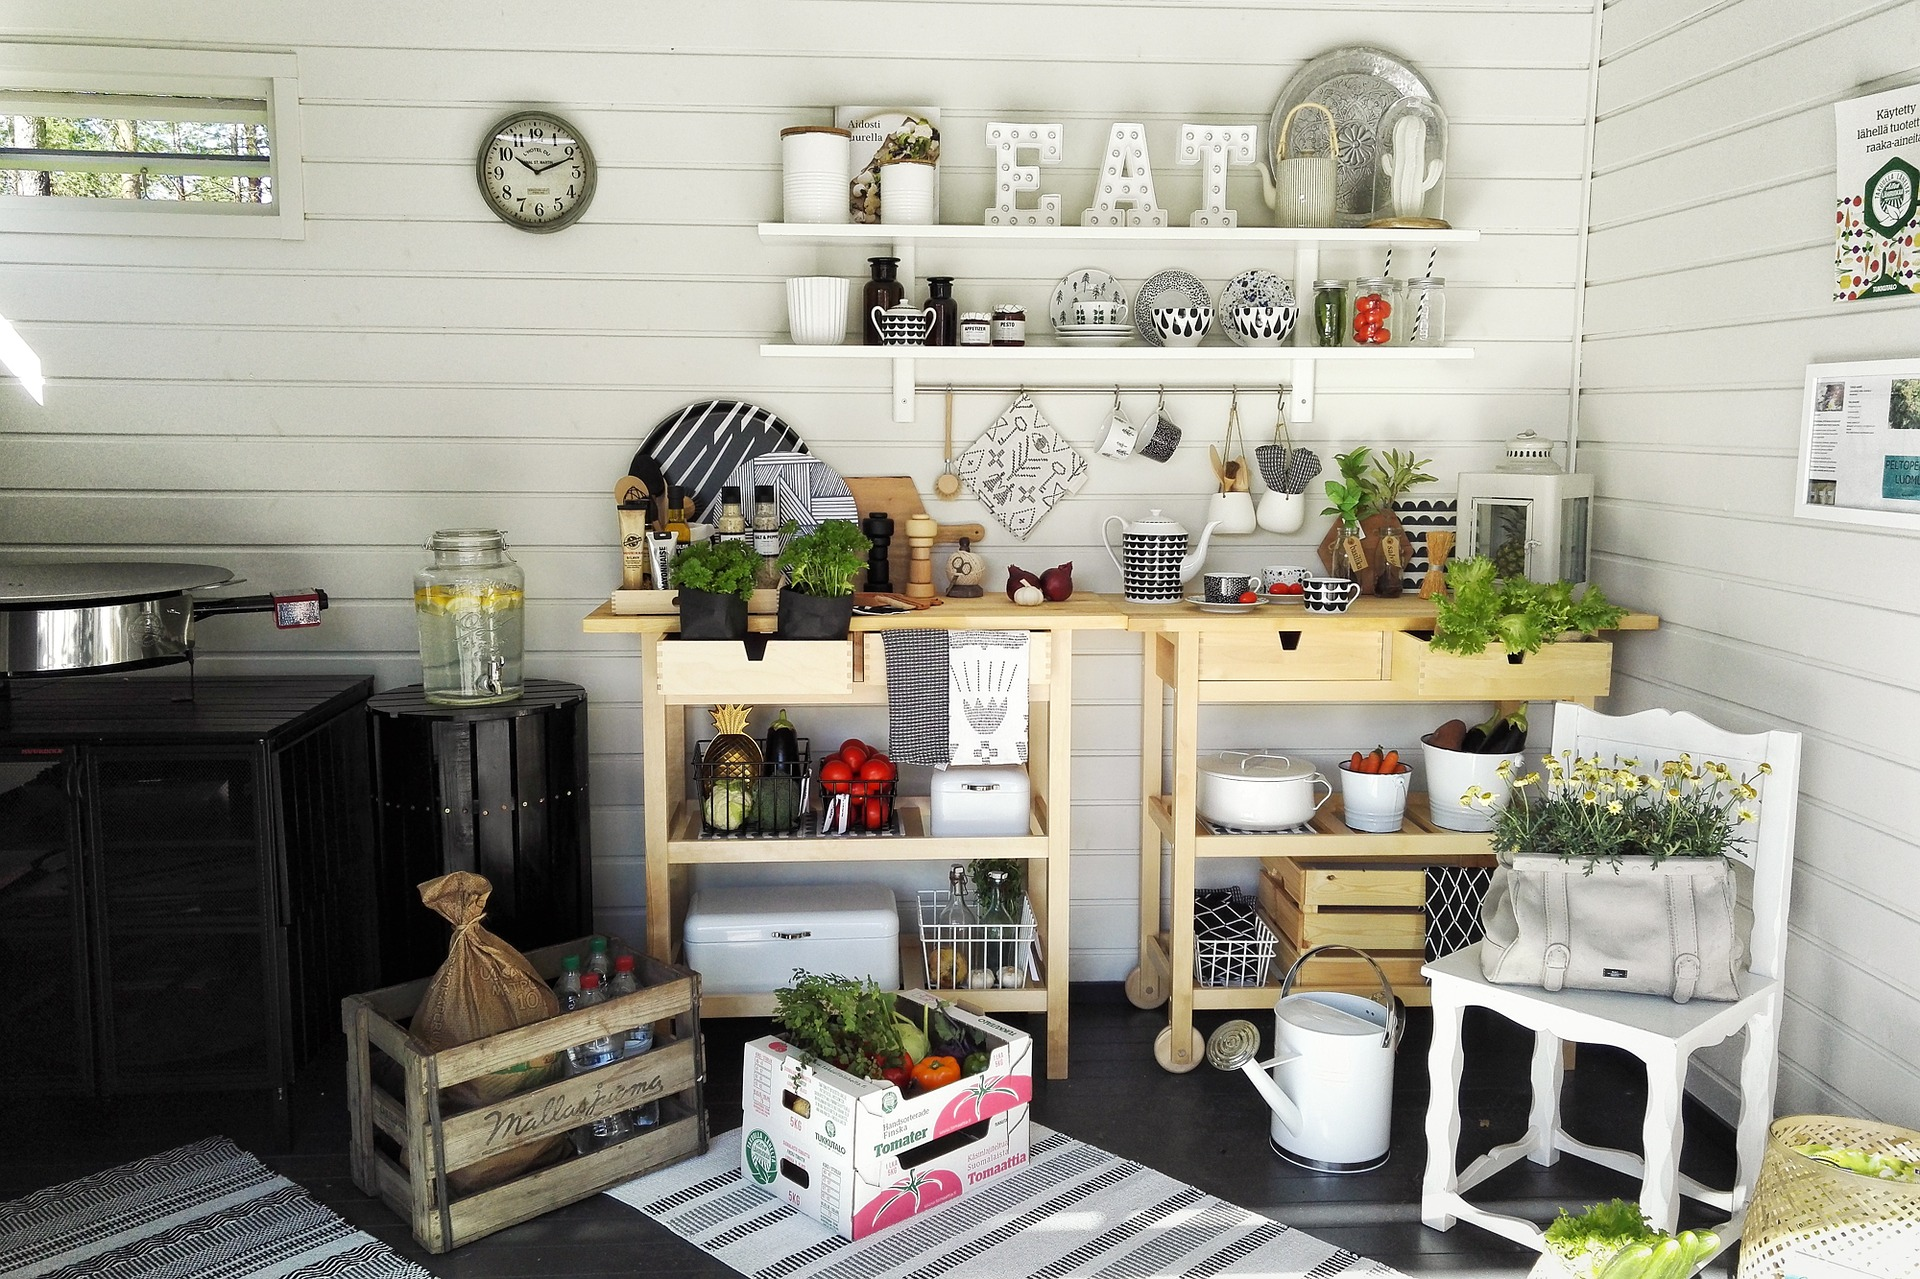 DIY home projects tips and advice Blog Website